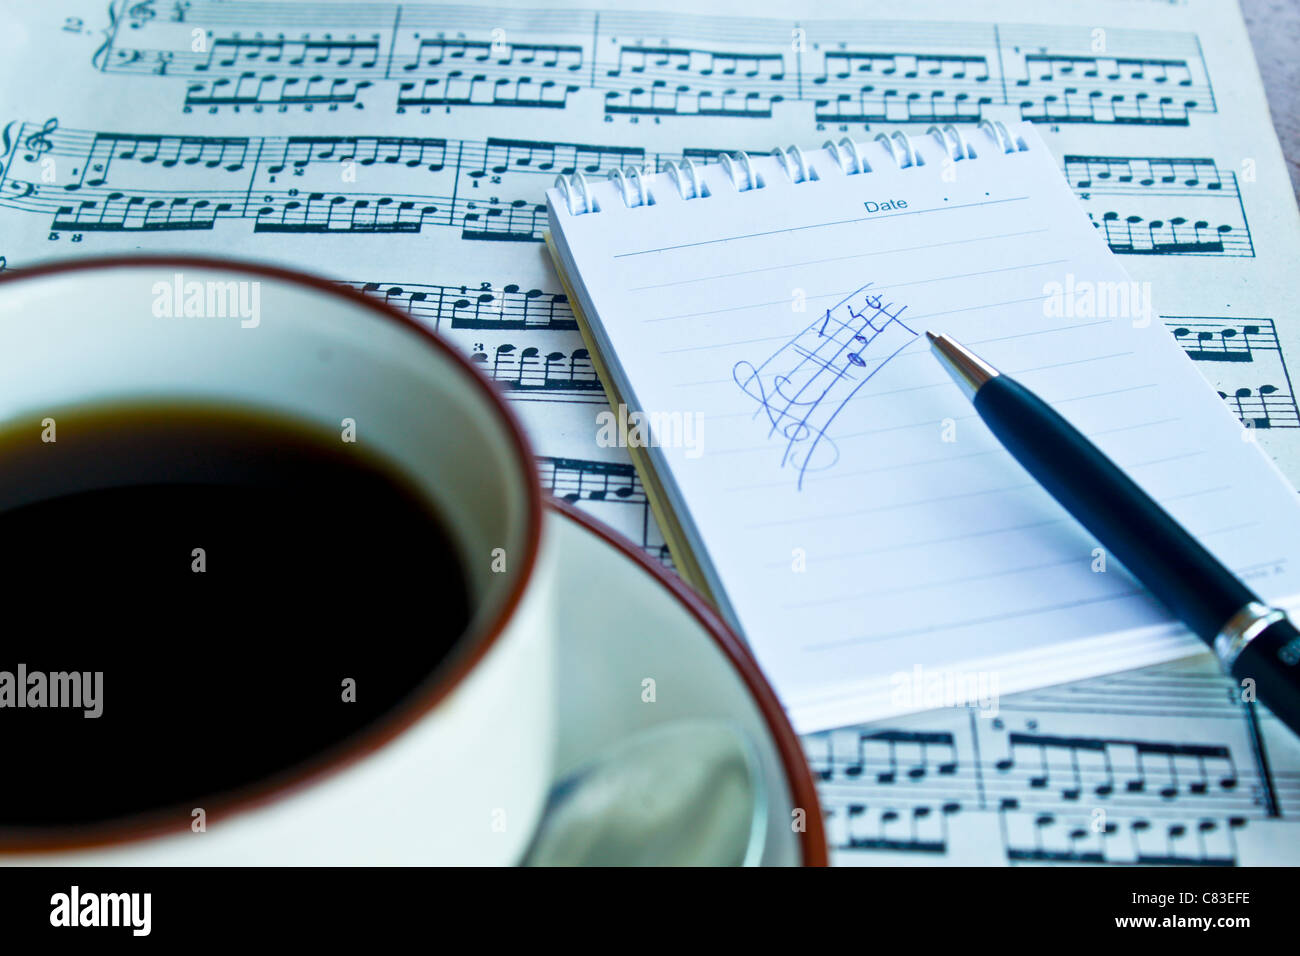 Cafee in cup on background music note and score note with black pen. - Stock Image